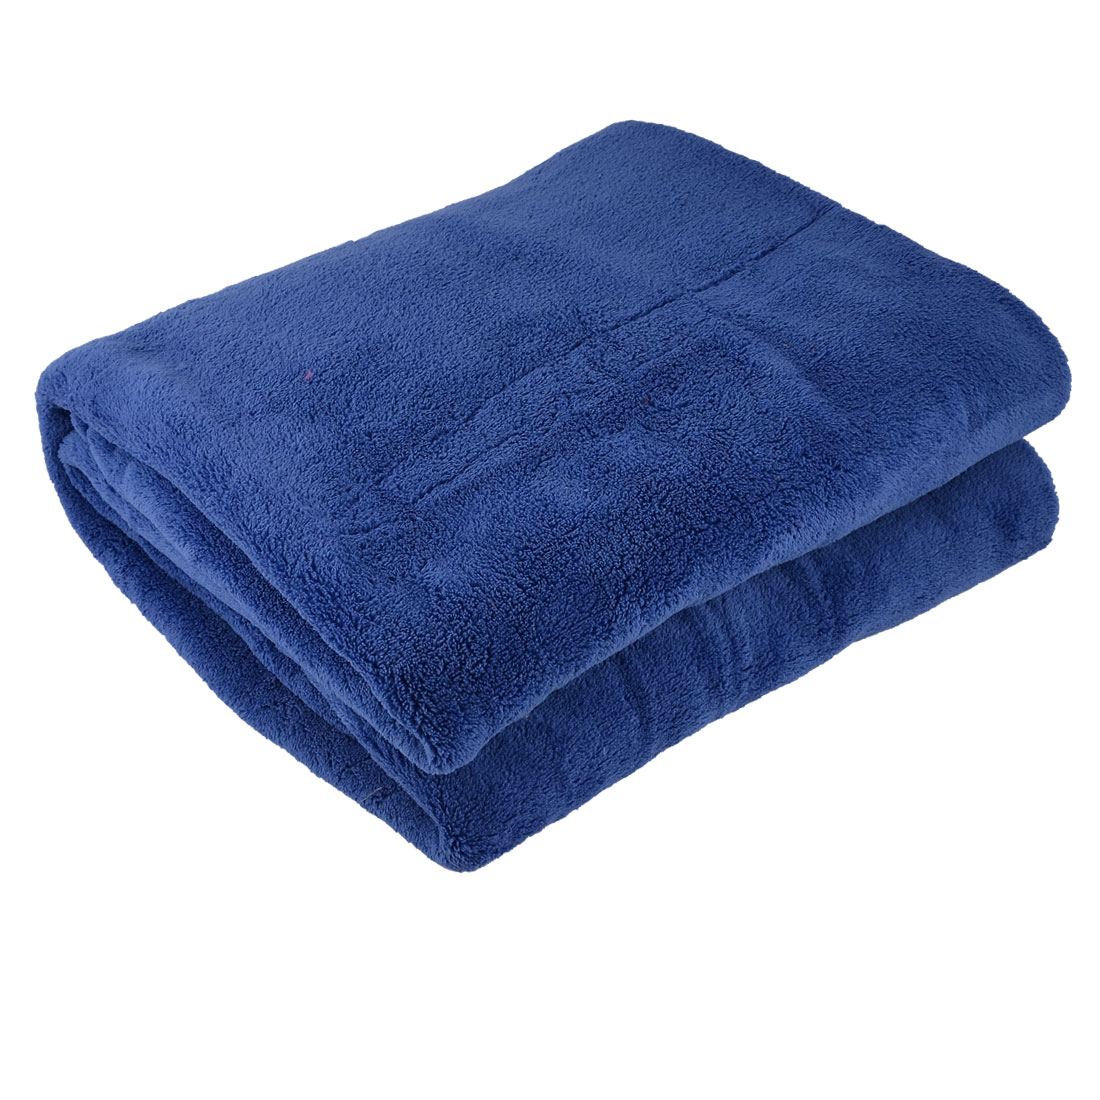 Home Bedroom Warm Soft Throw Pure Blanket Rug Bed Quilt Blue